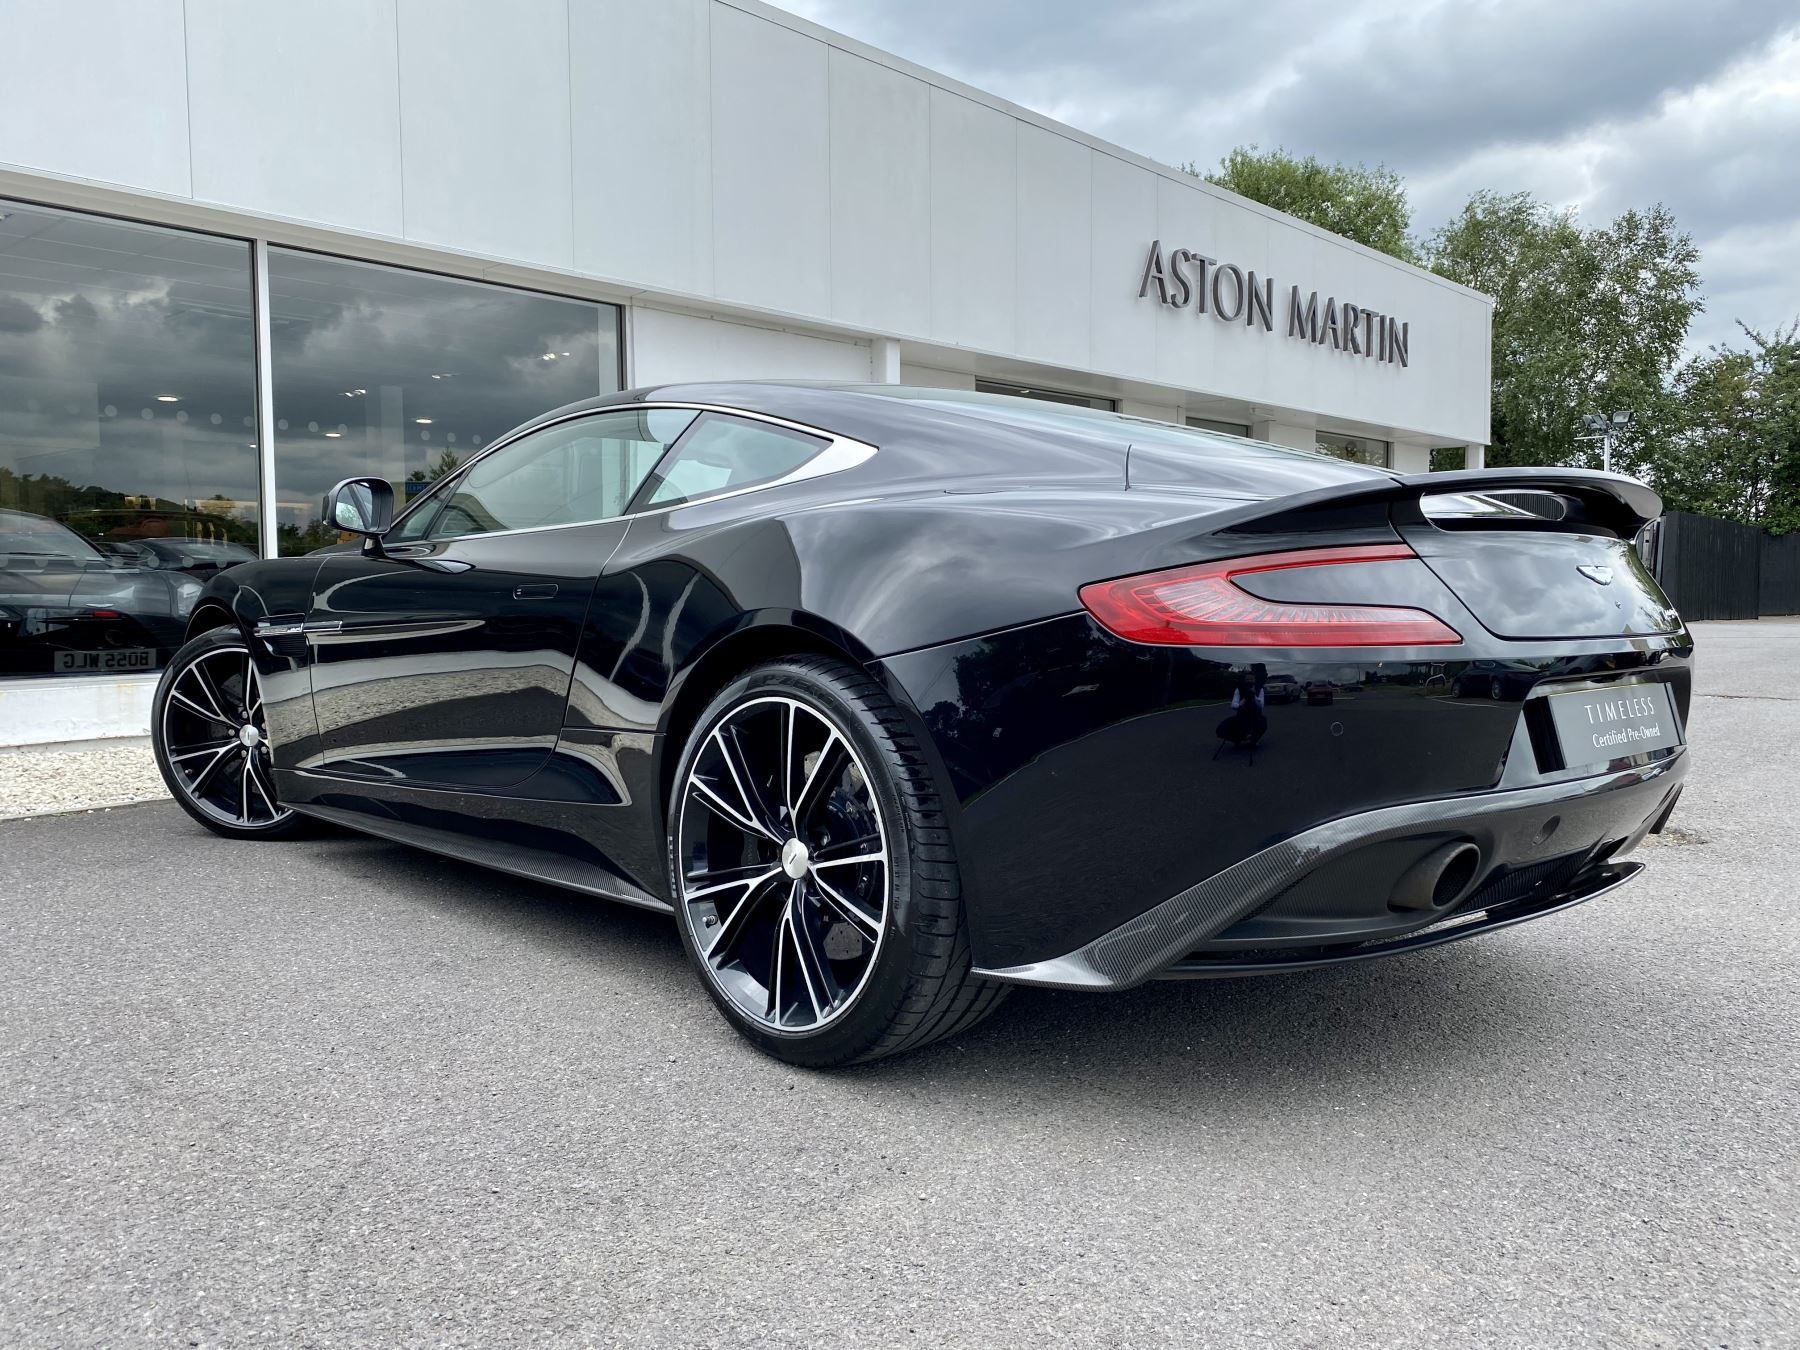 Aston Martin Vanquish V12 [568] 2+2 2dr Touchtronic 3 8 Speed, 2 Owners From New, Onyx Black, Bang And Olufsen. image 5